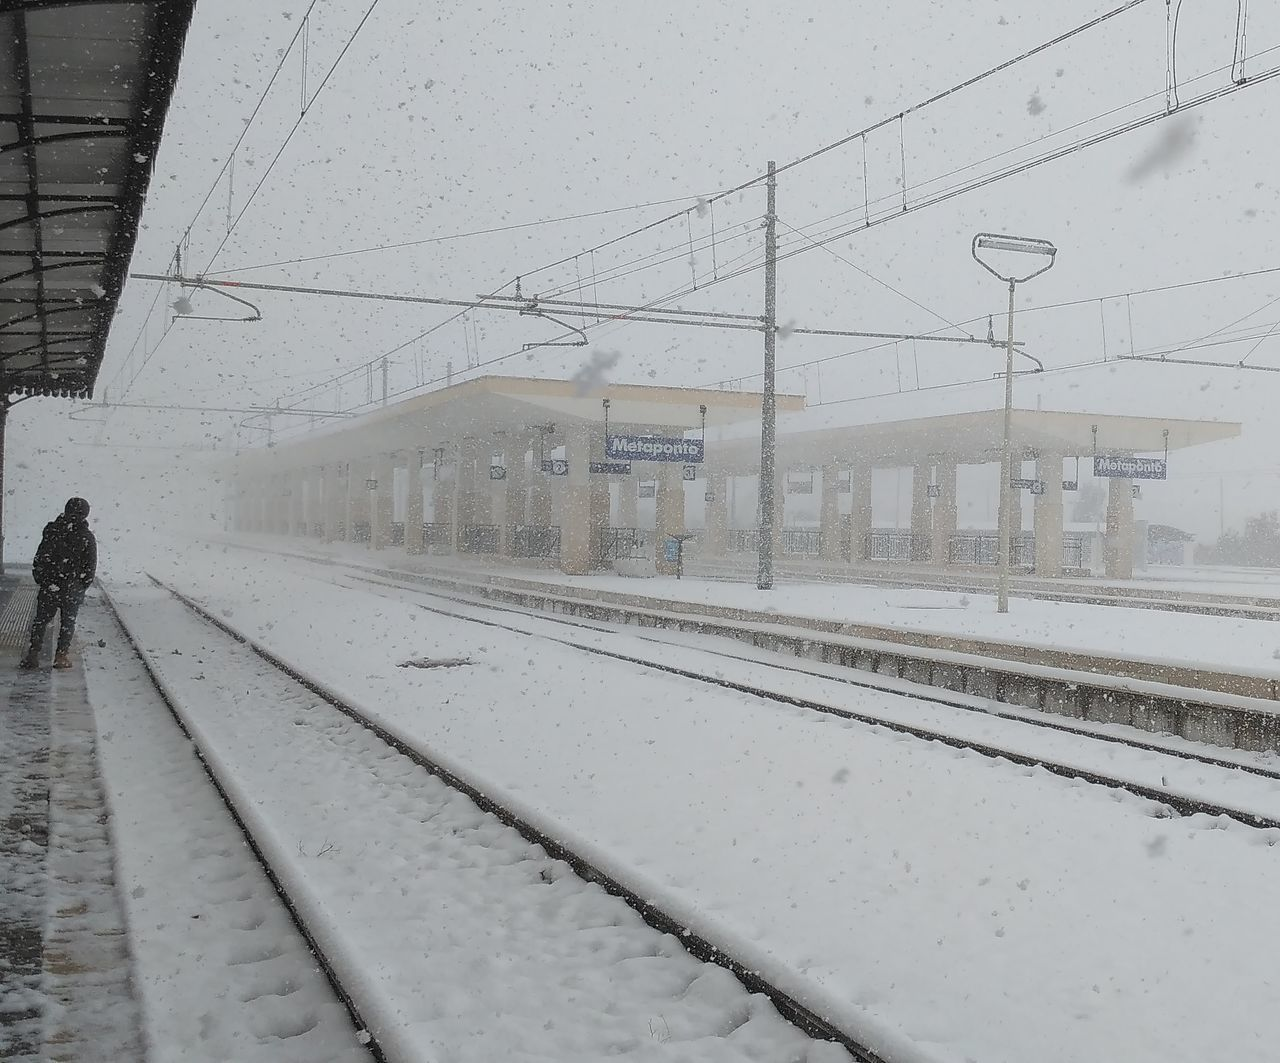 winter, cold temperature, snow, railroad track, transportation, rail transportation, weather, public transportation, railroad station platform, train - vehicle, railroad station, cable, outdoors, snowing, railway track, real people, day, built structure, nature, men, architecture, technology, electricity pylon, one person, people